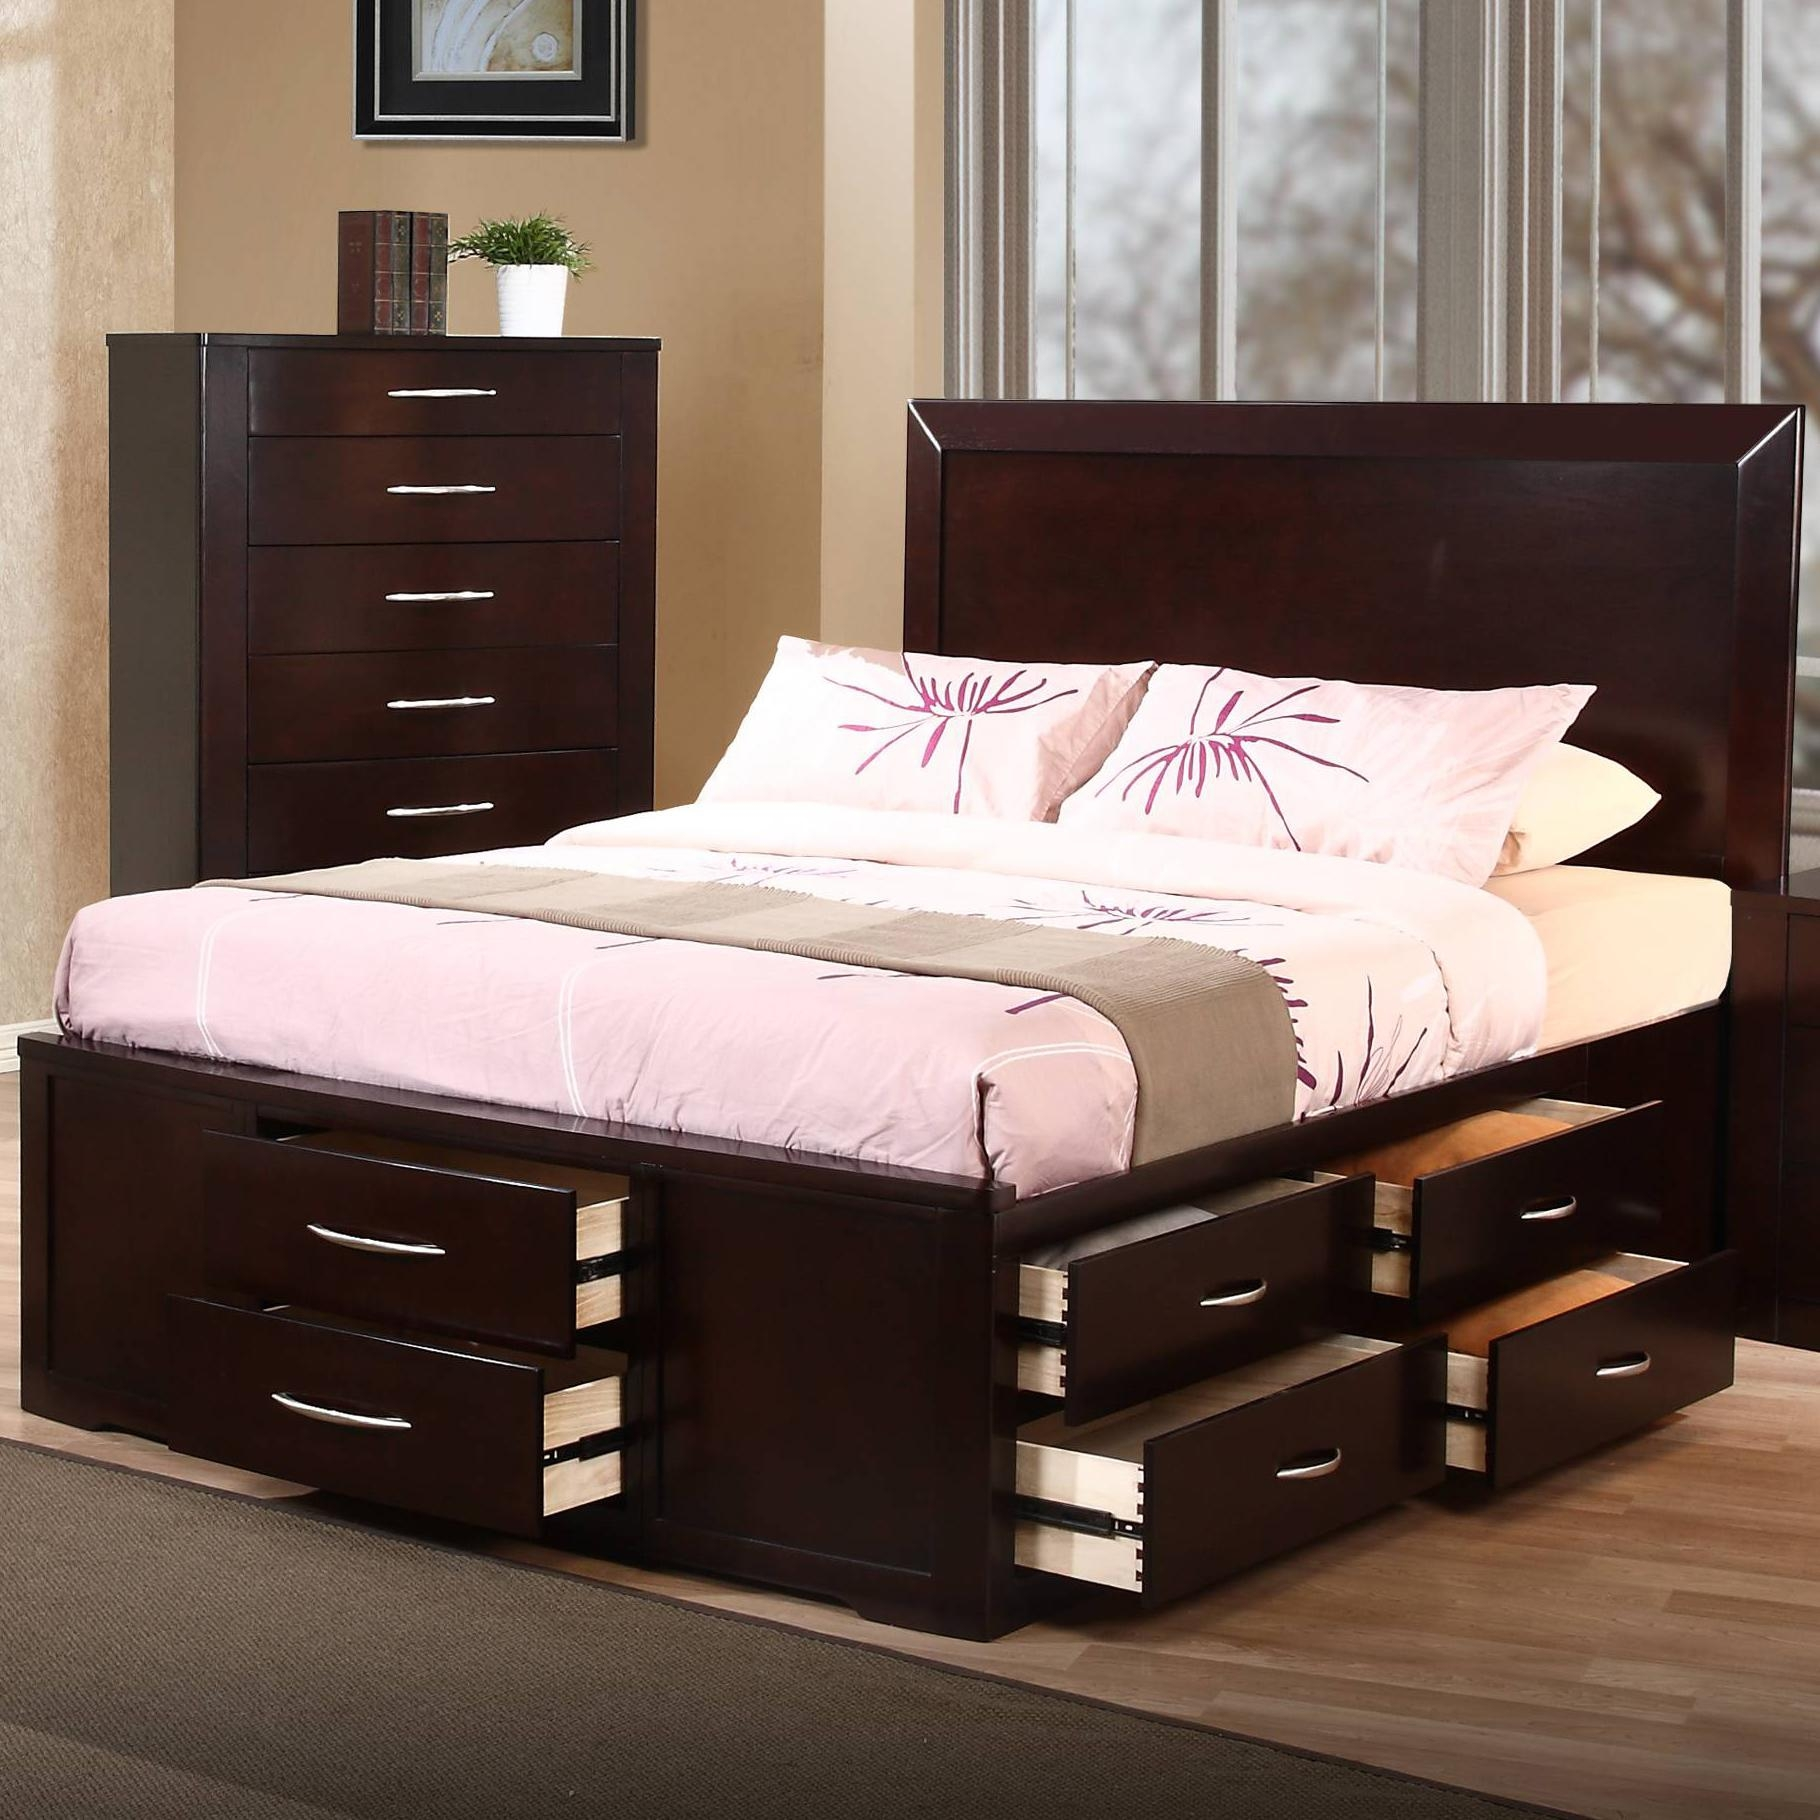 High Queen Bed Frame With Storage